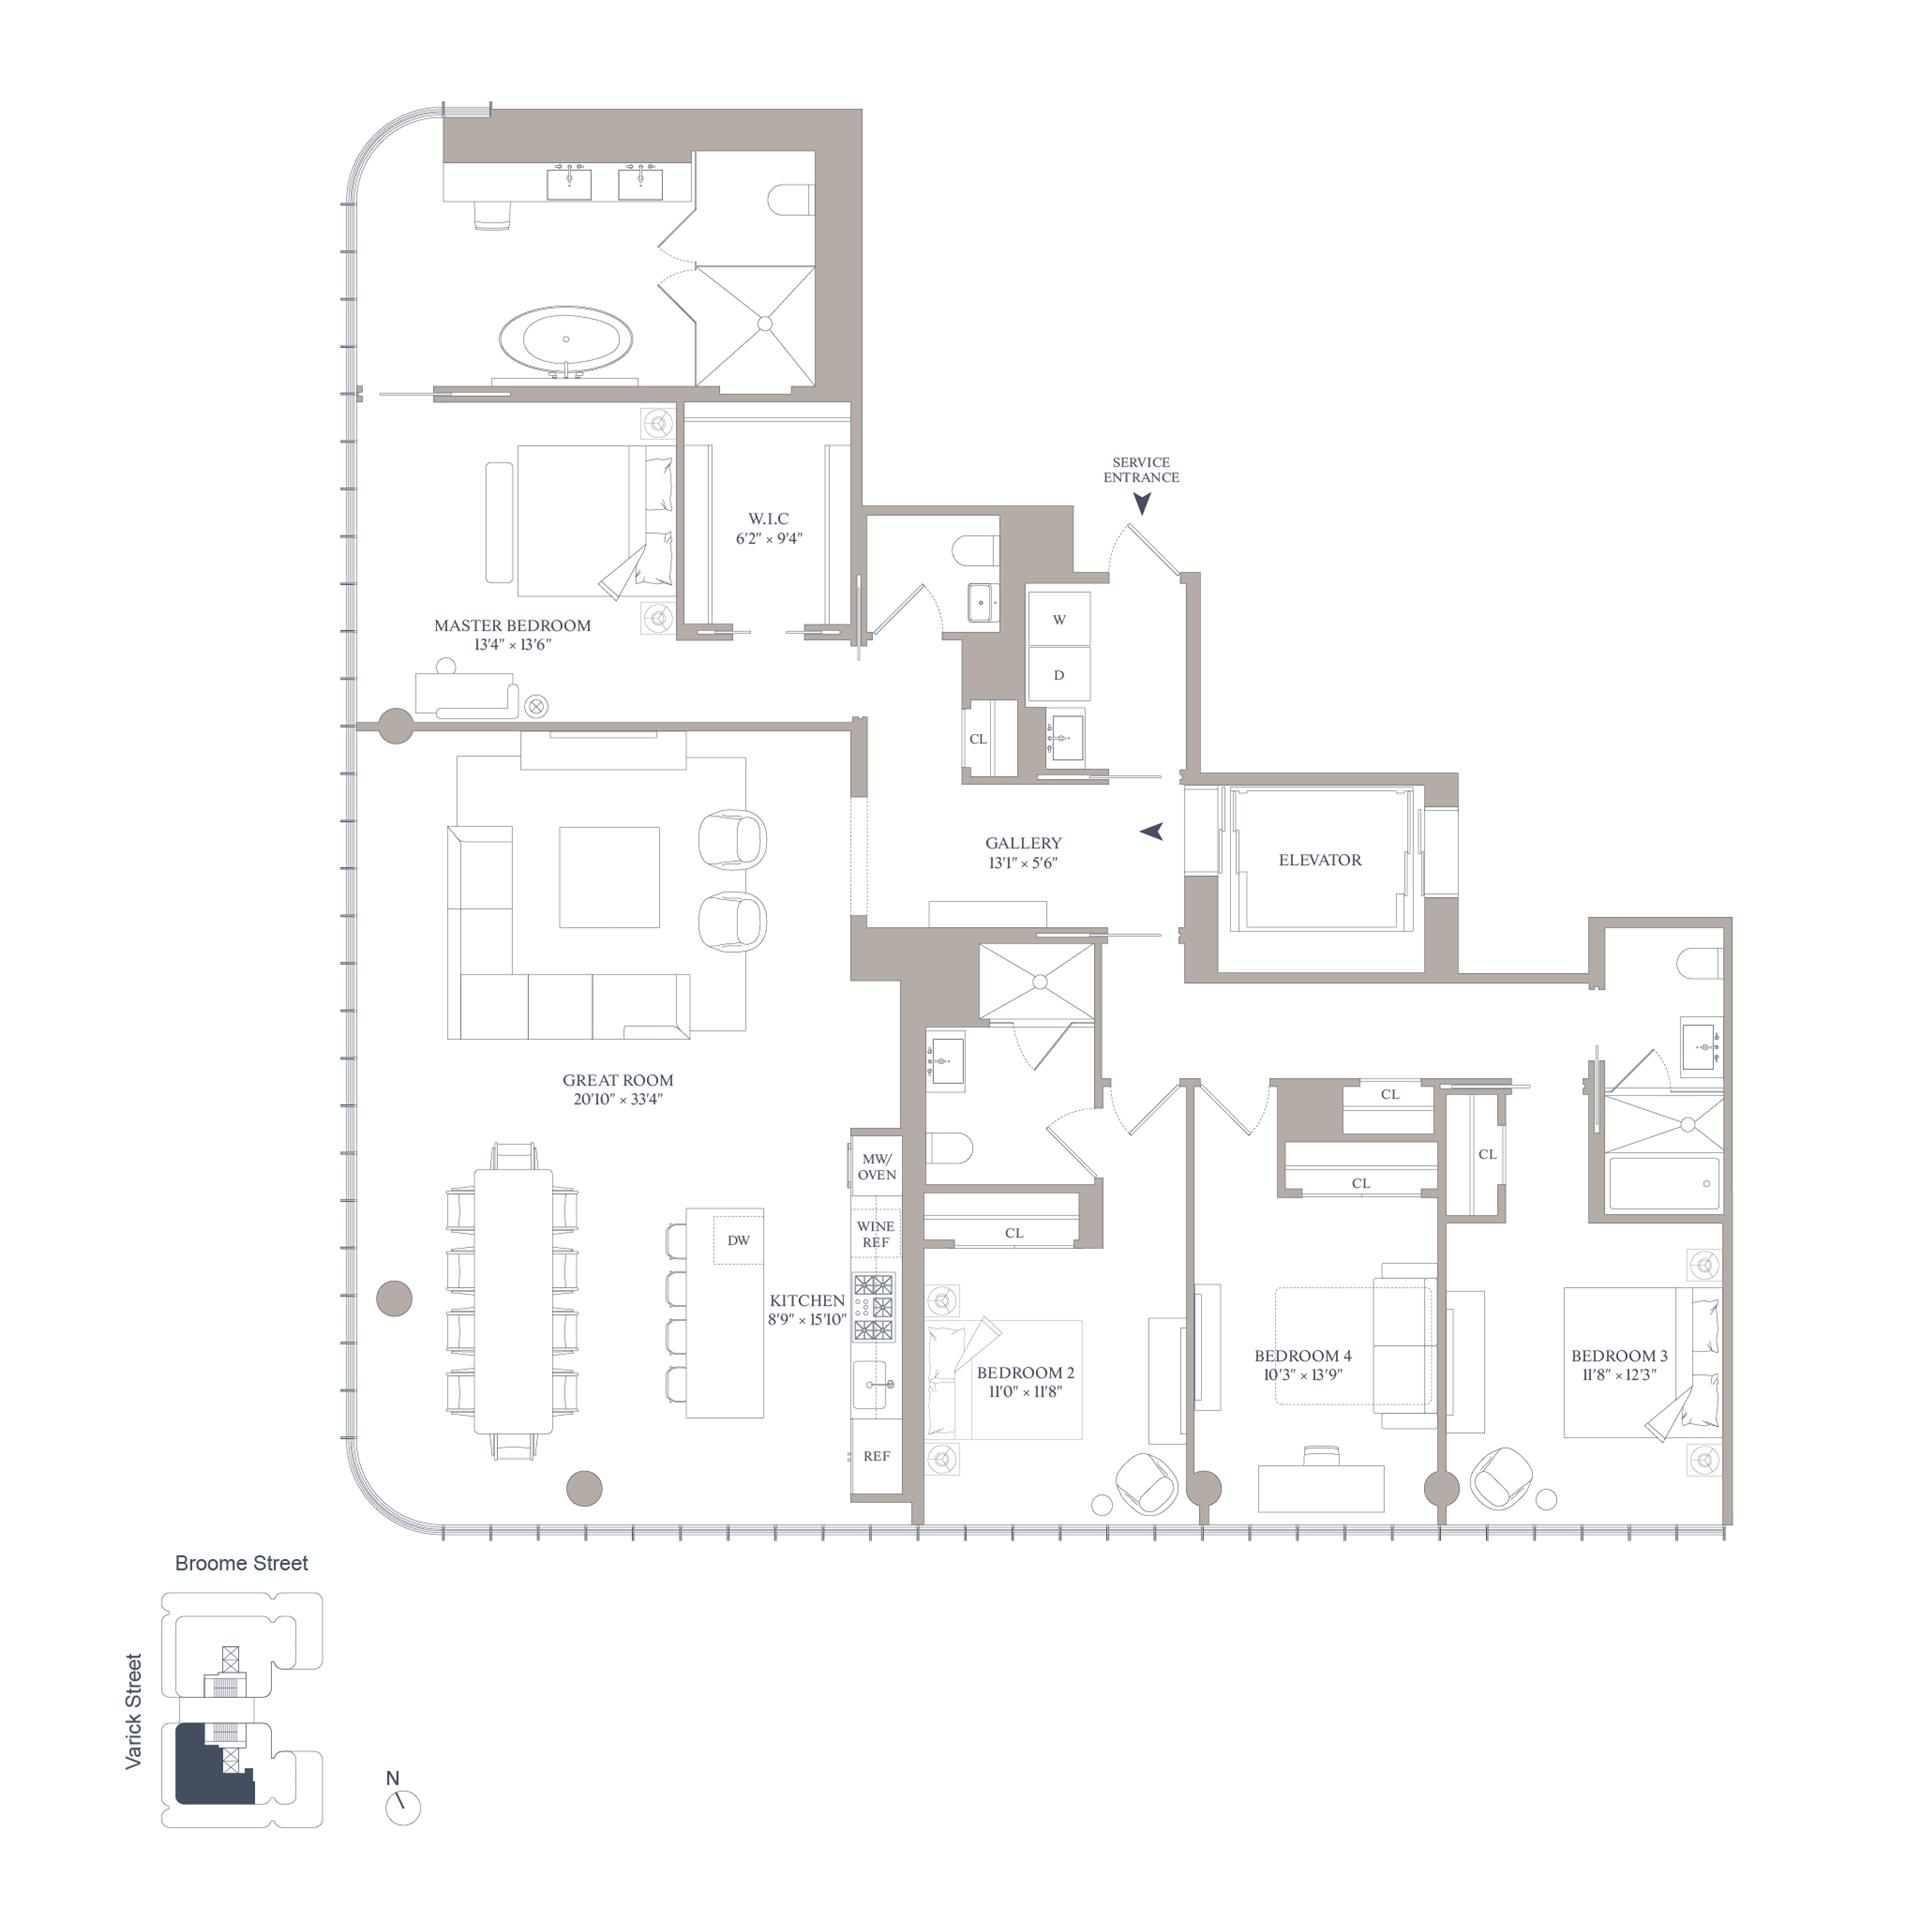 Floor plan of 565 Broome St, S22A - SoHo - Nolita, New York